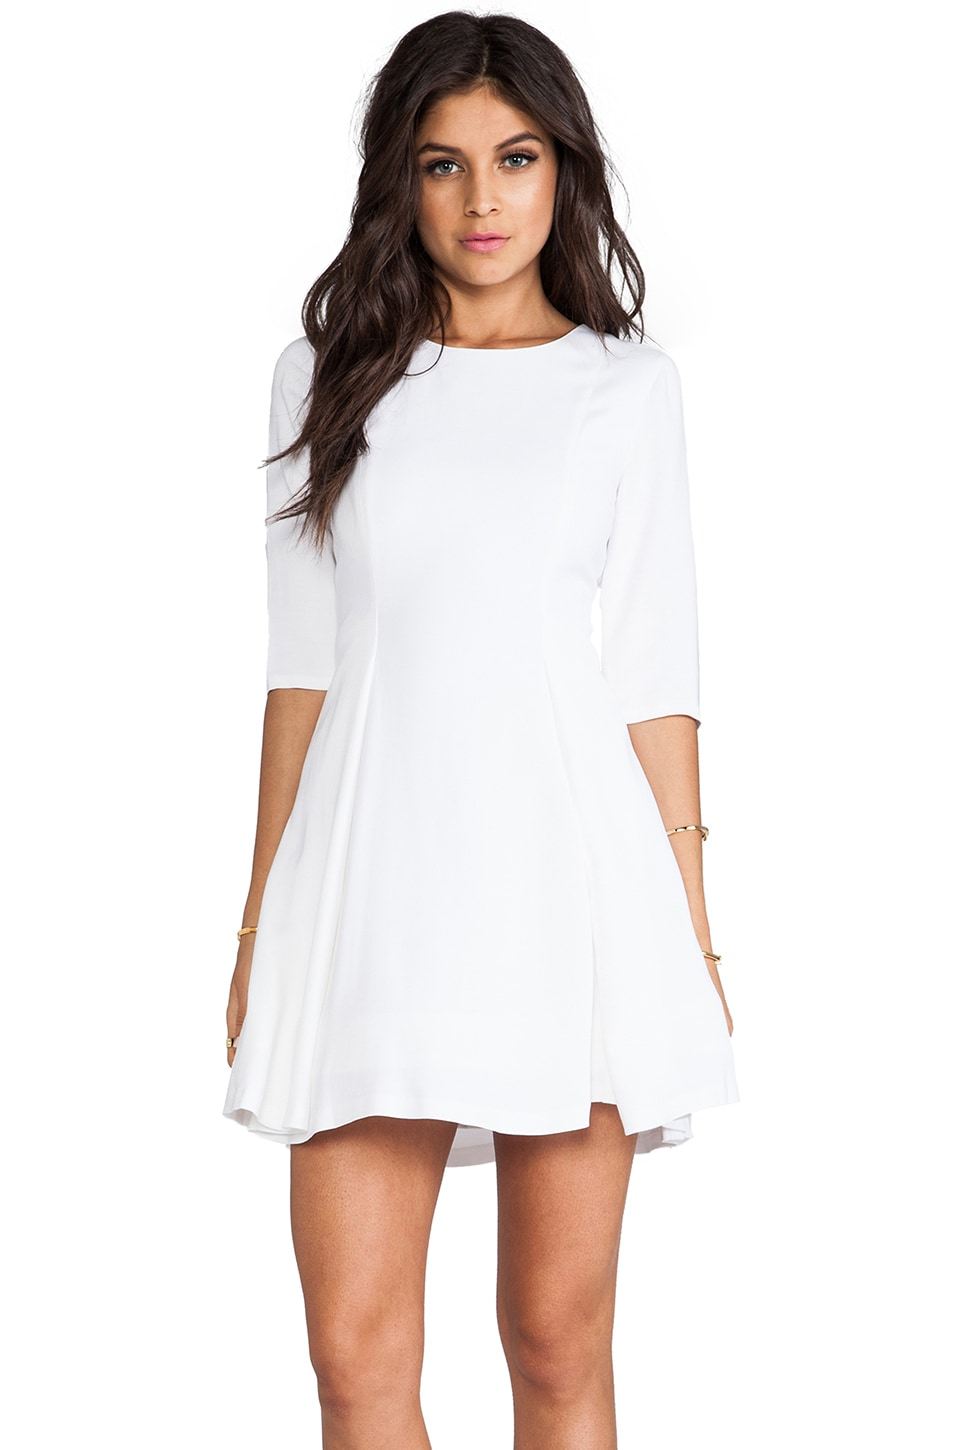 Alice + Olivia Zoisa 3/4 Sleeve Pleated Flare Dress in White